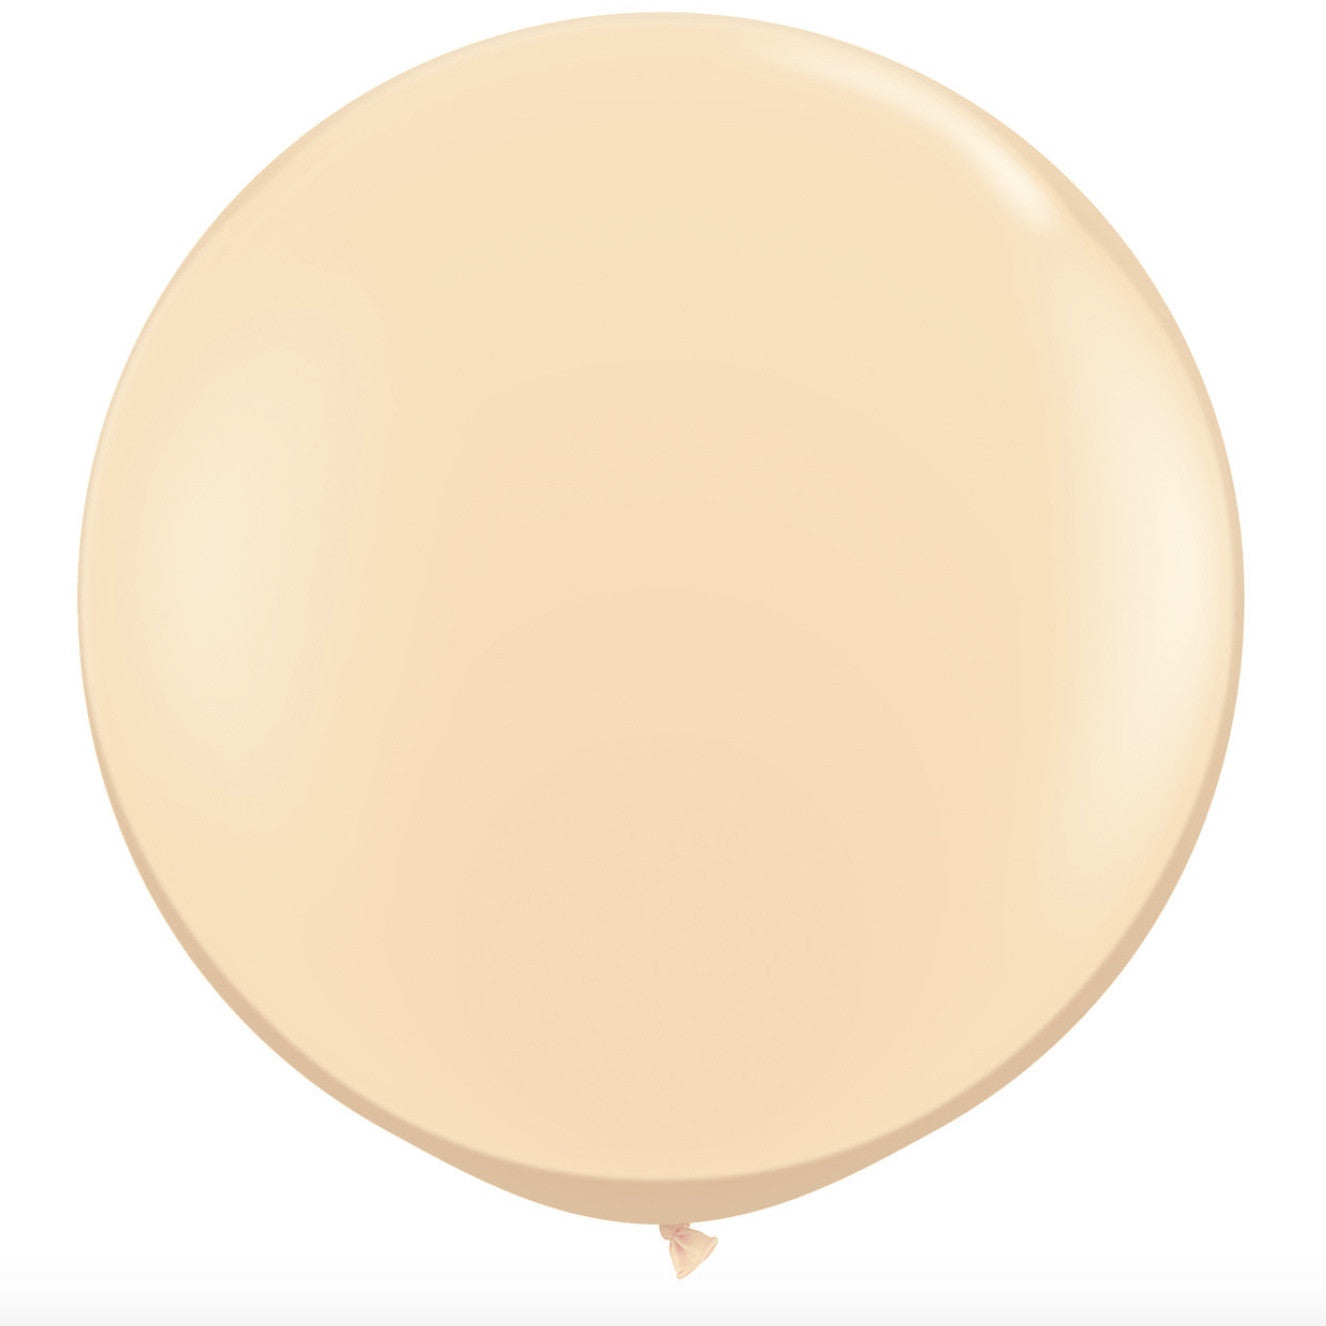 "Giant Round Balloon 36""- Blush"